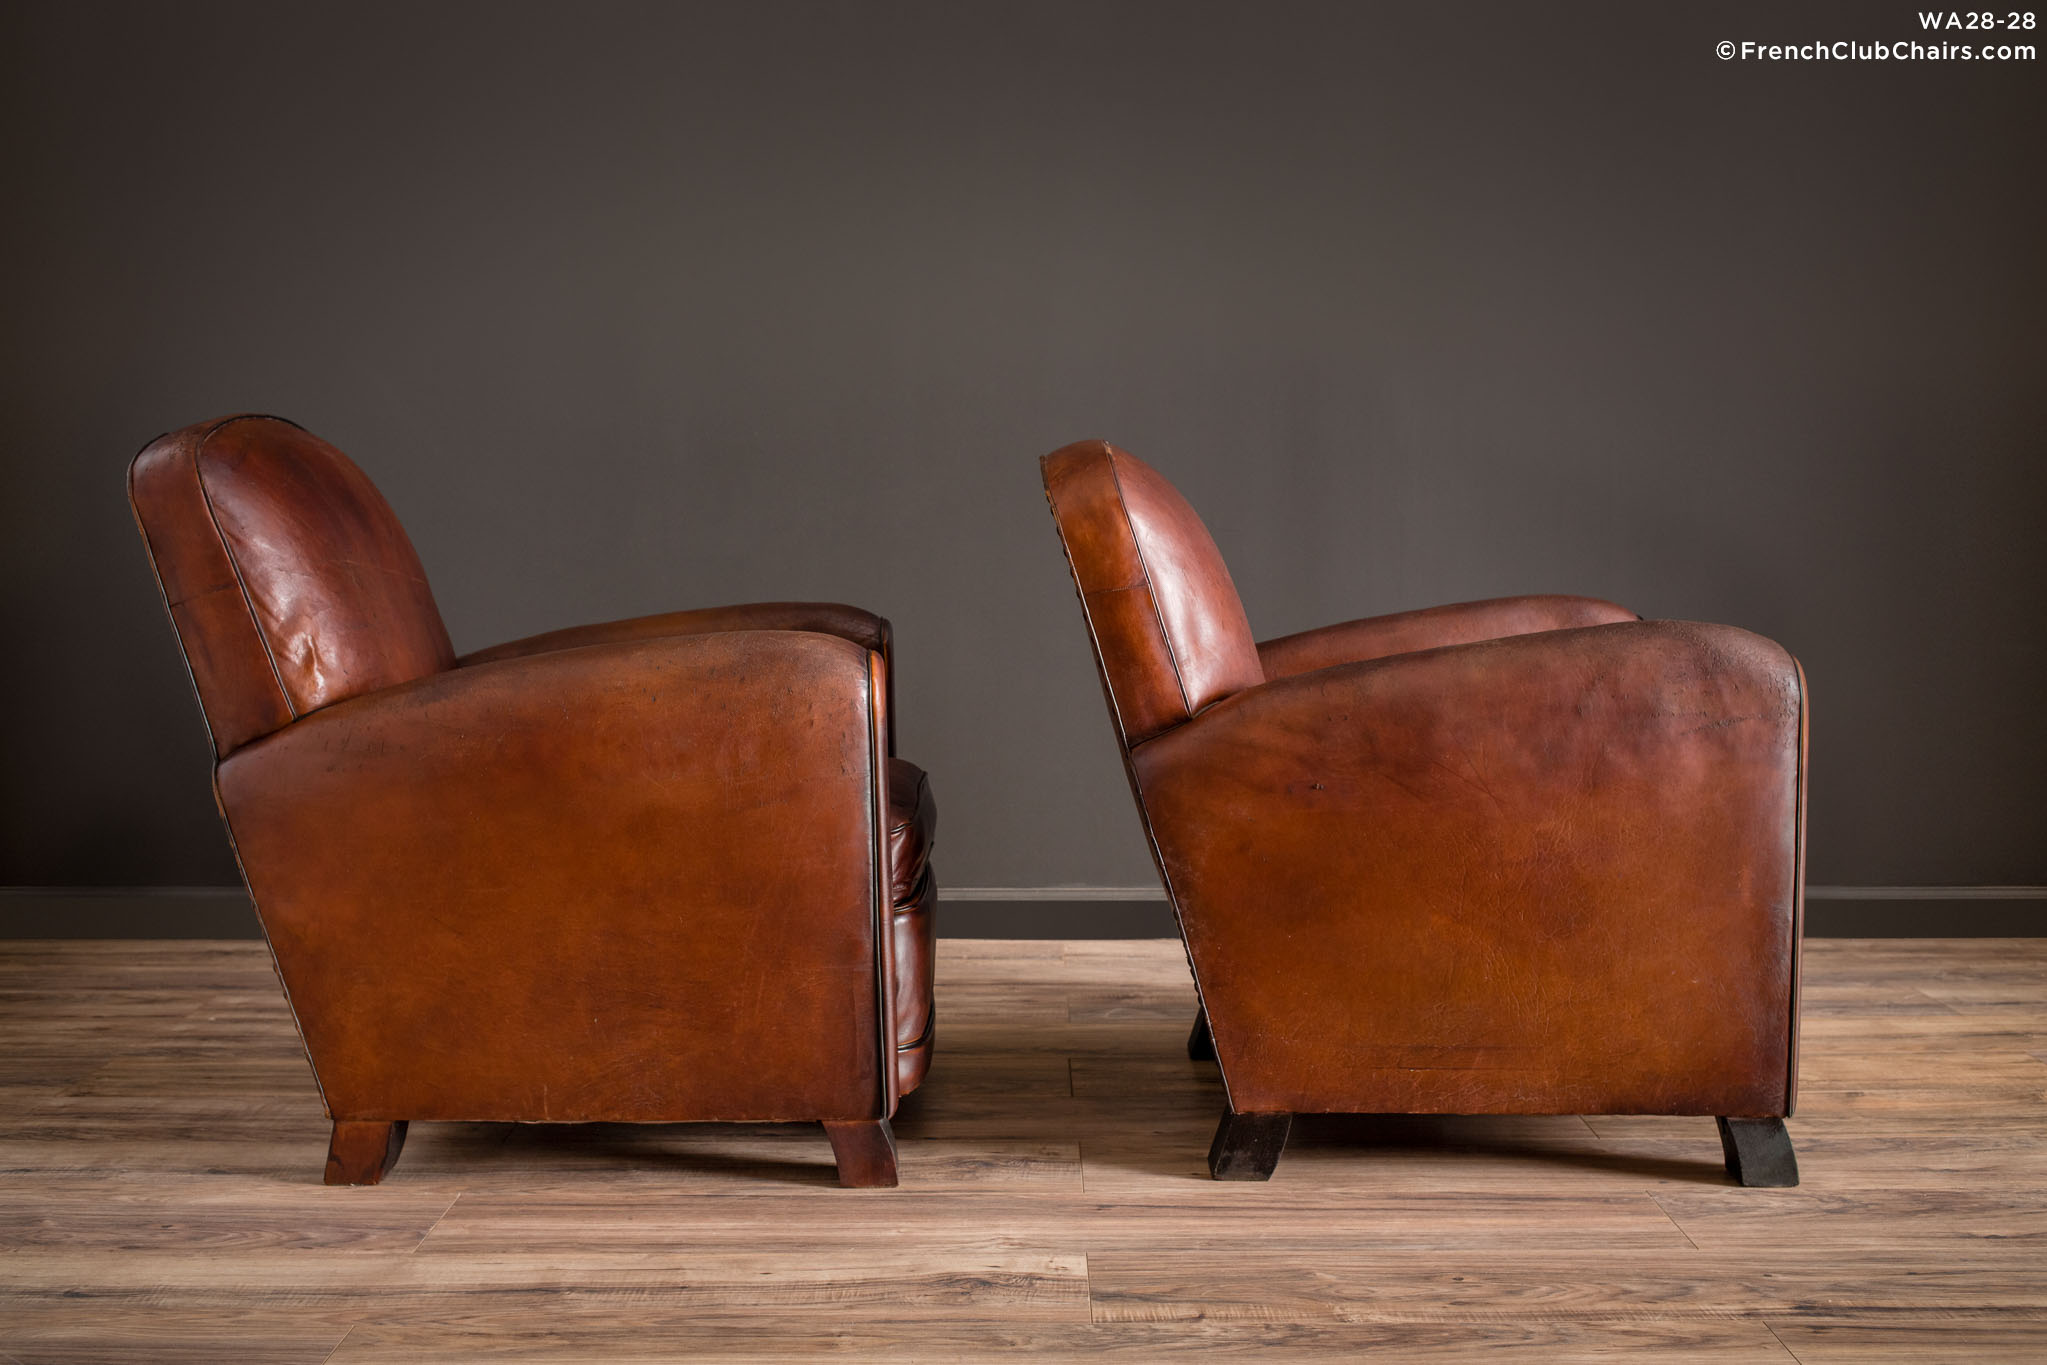 WA_28-28_La_Louvre_Library_Pair_R_3RT1-williams-antiks-leather-french-club-chair-wa_fcccom